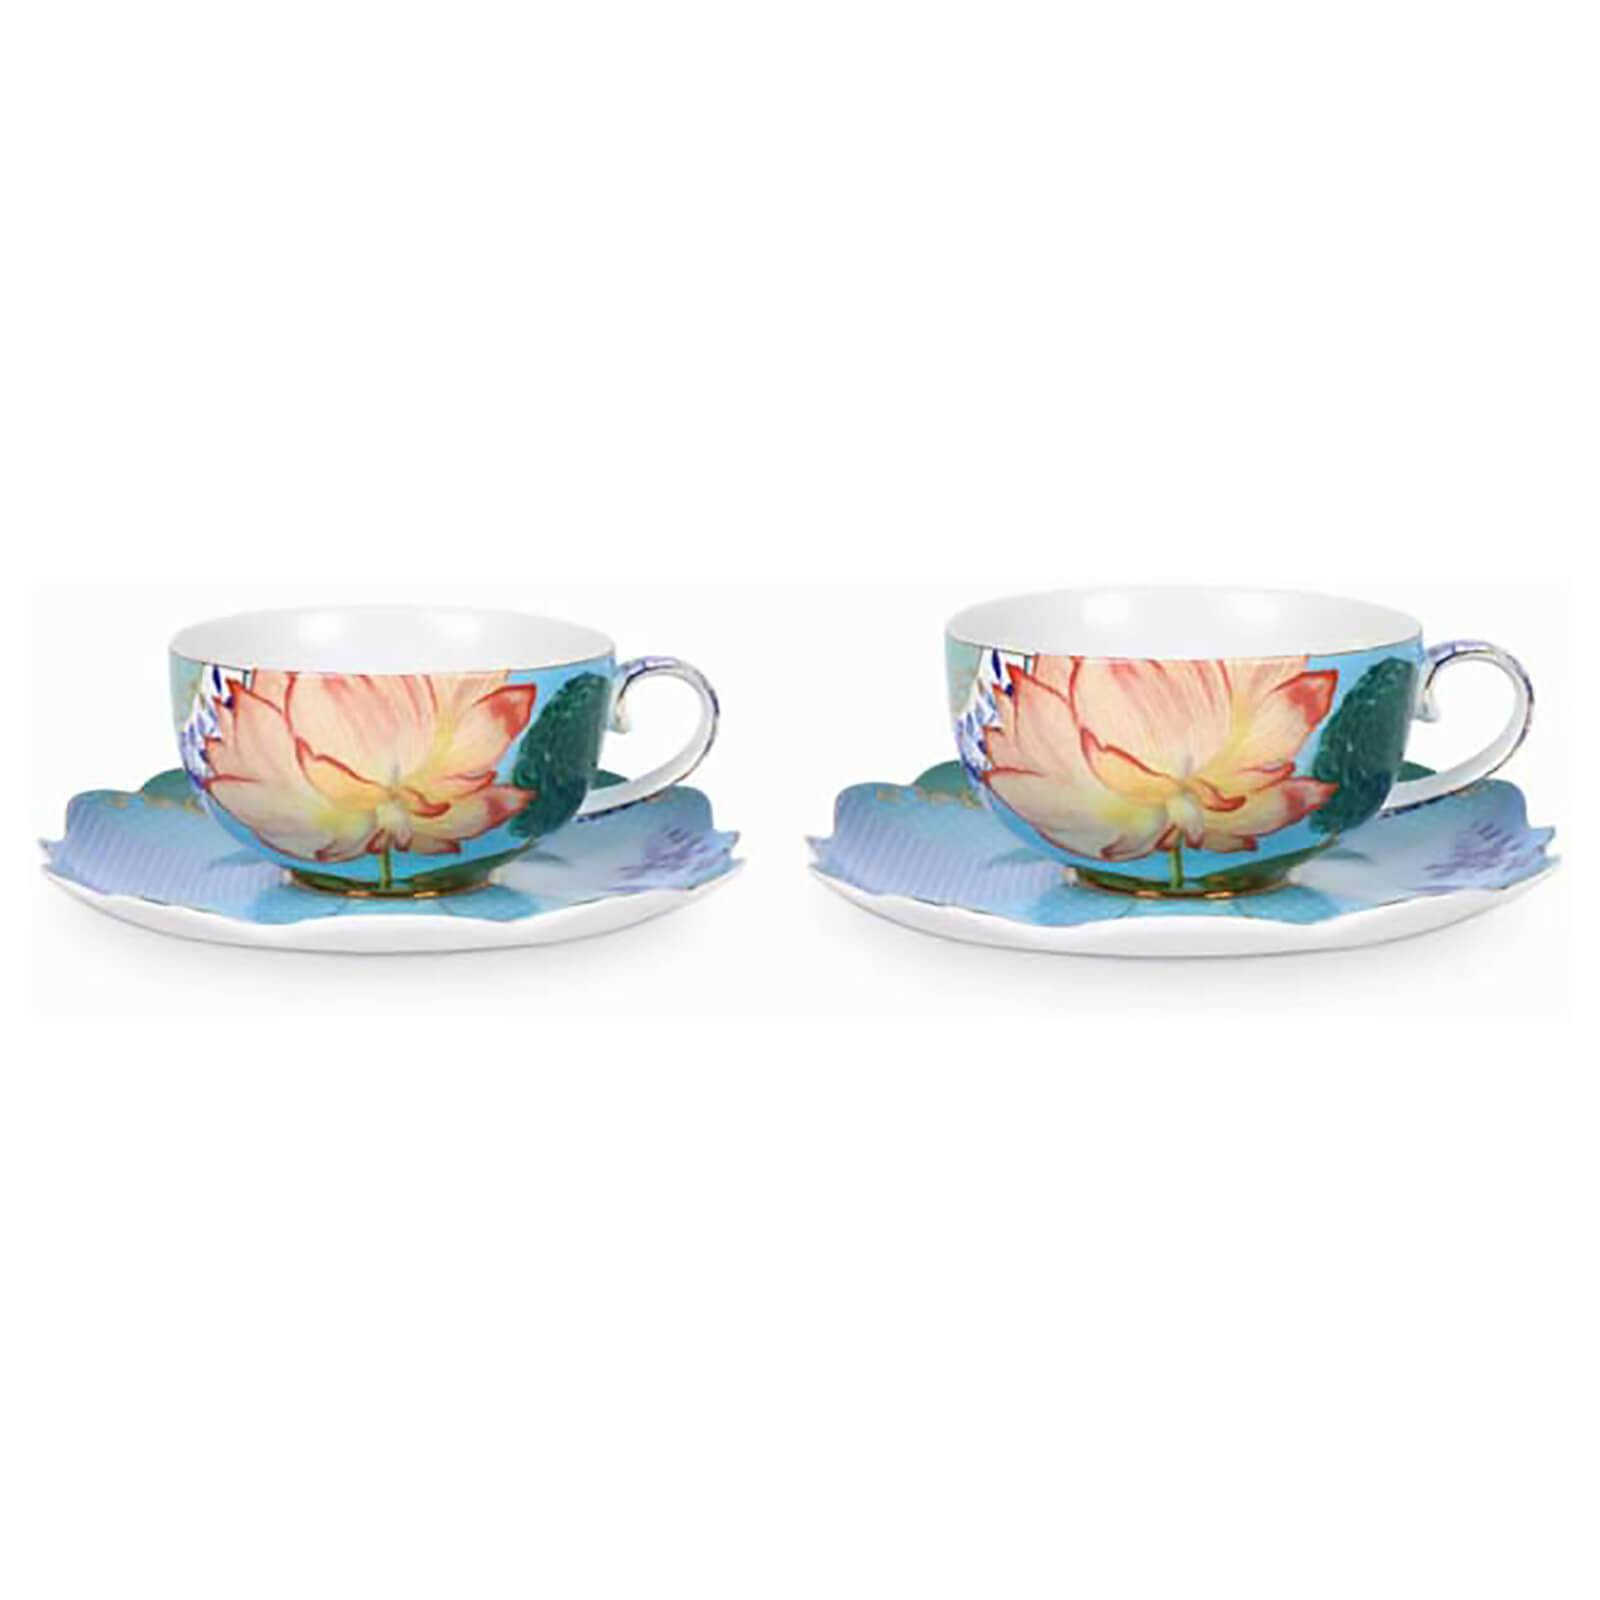 Pip Studio Tea Cups and Saucers - Floral (Set of 2)